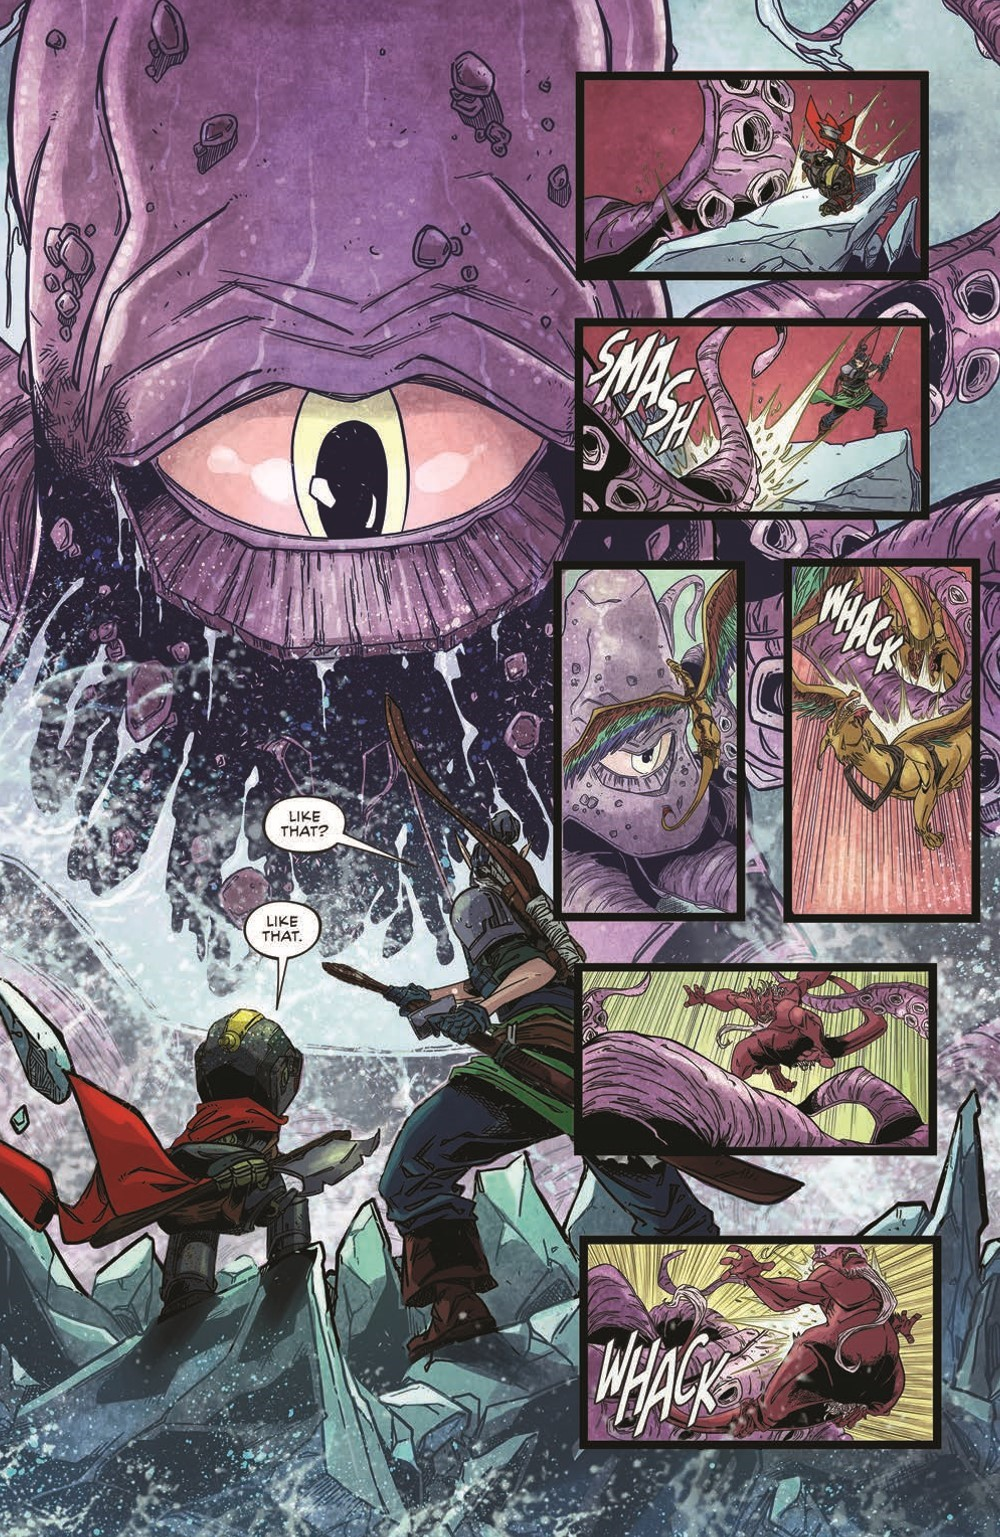 Canto-LH02_pr-6 ComicList Previews: CANTO III LIONHEARTED #2 (OF 6)